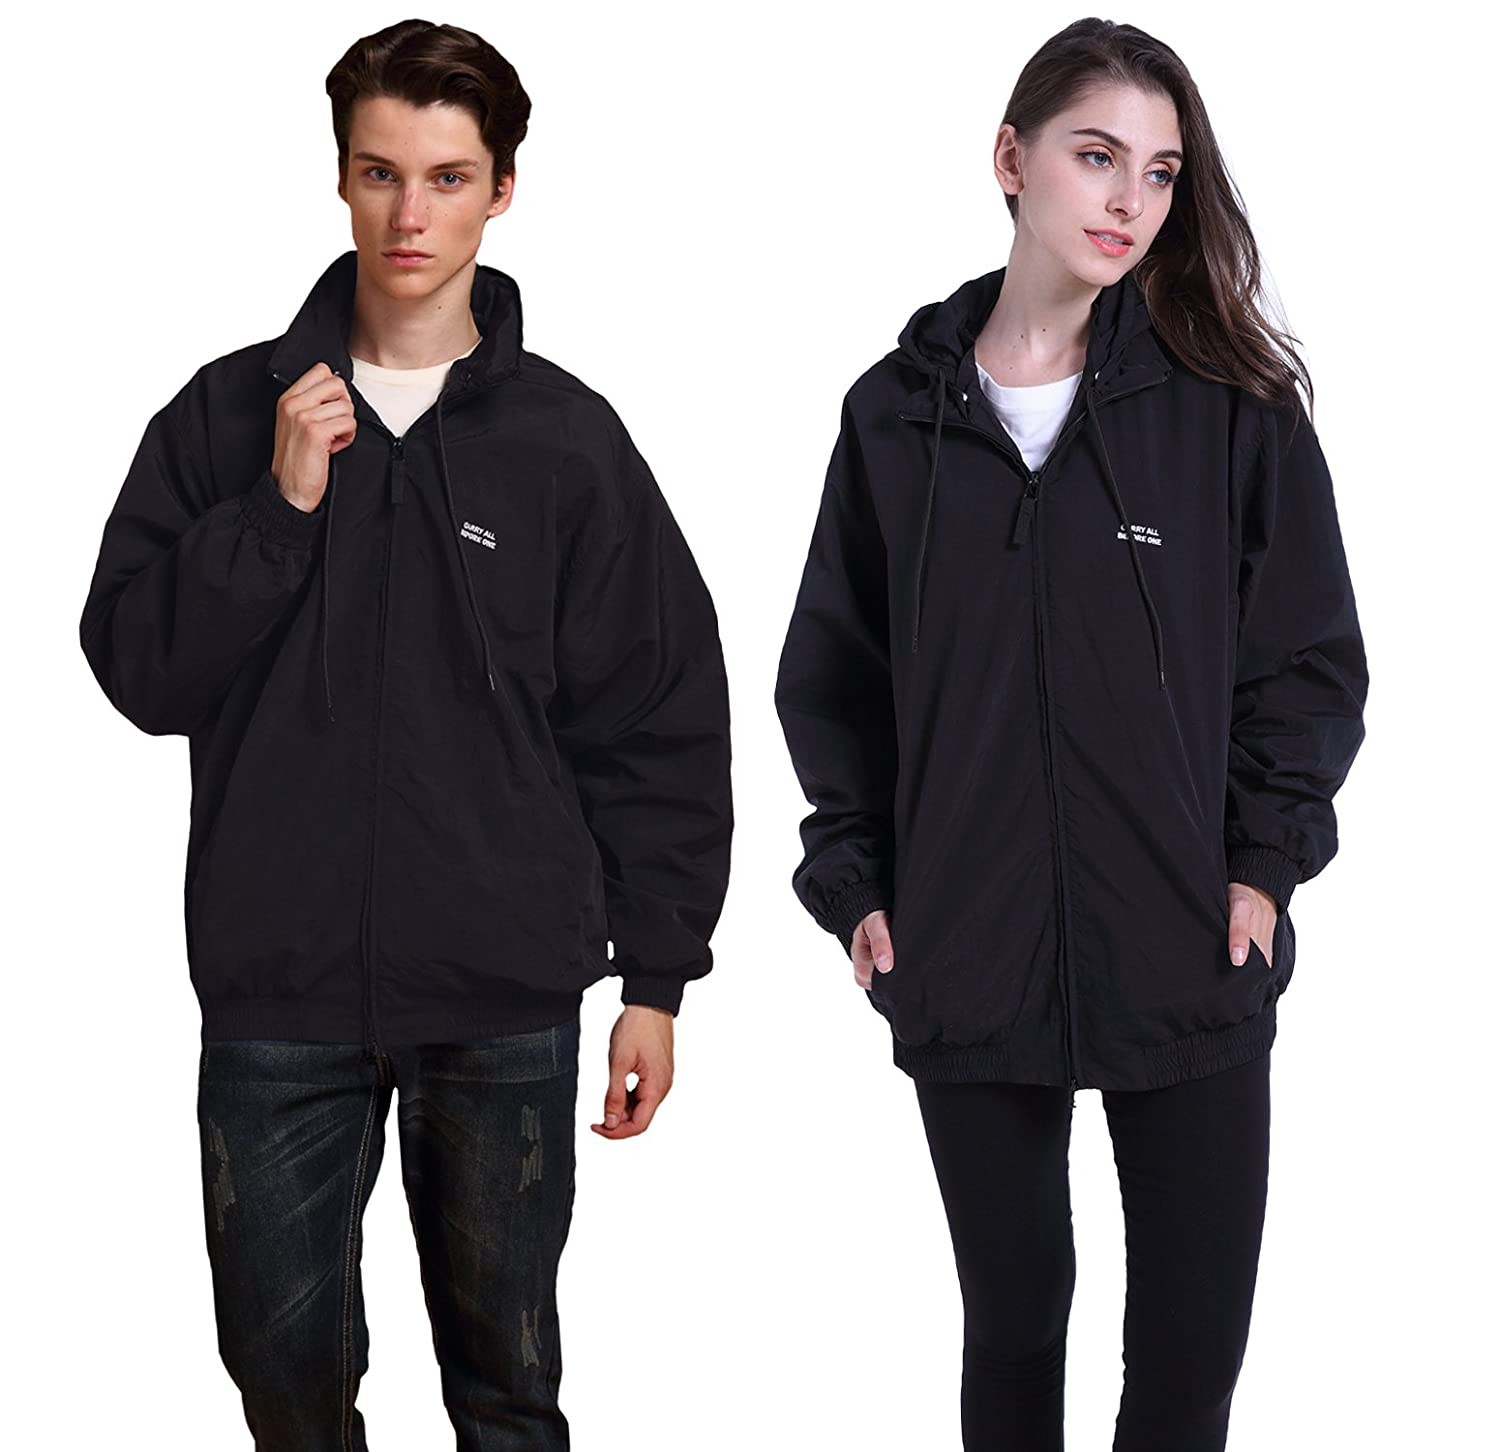 AIKOSHA Mens Womens Casual Couple Matching Active Hoodie Lightweight Spring Jacket